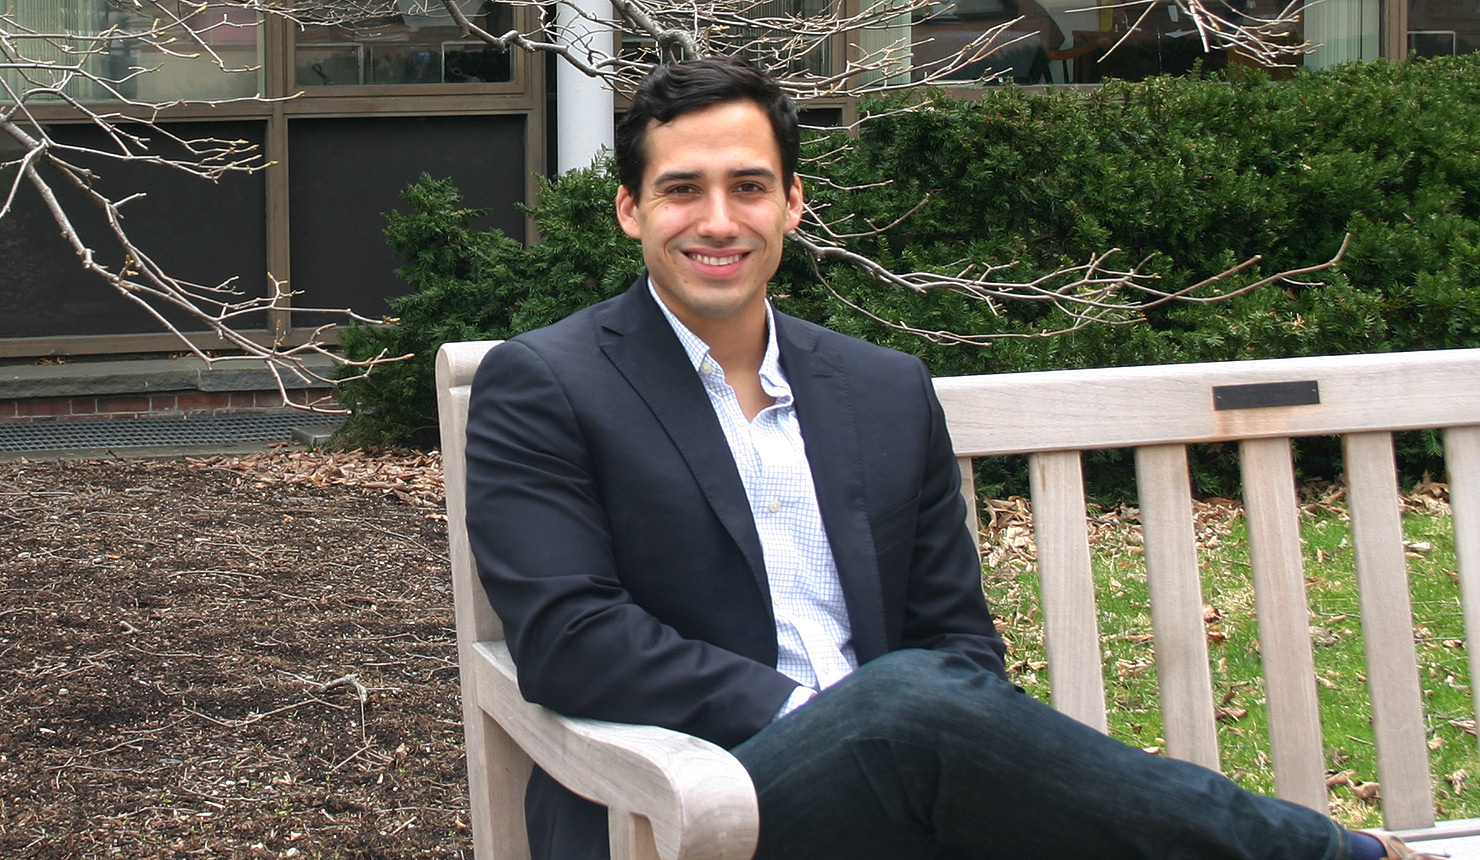 Geisel med student Tito Porras was selected to conduct full-time biomedical research through the Howard Hughes Medical Institute's Medical Research Fellows Program.